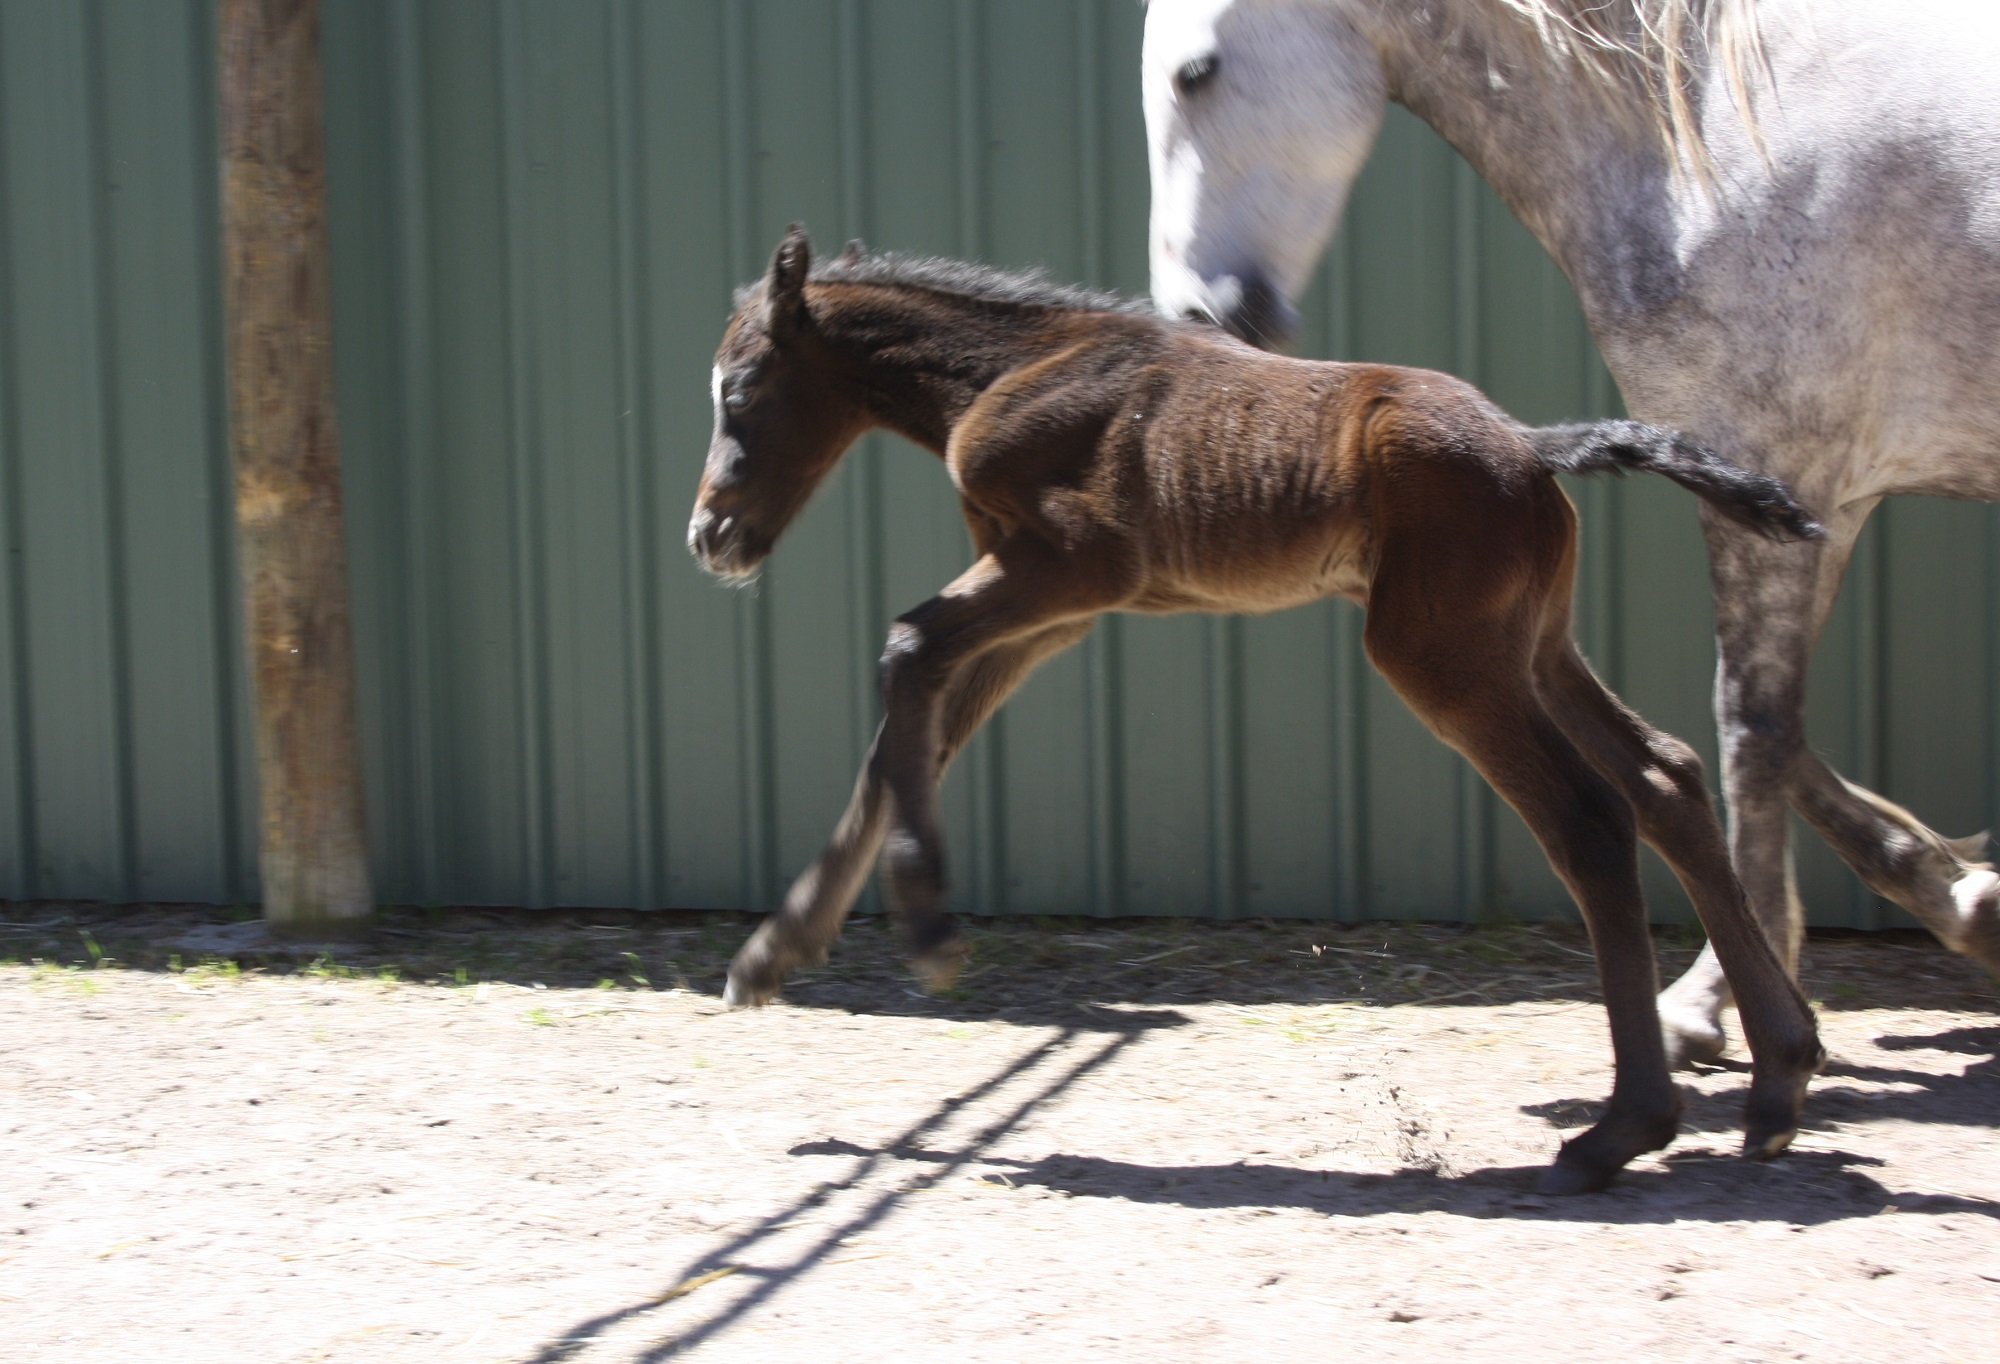 IMG 8298 crop email 2016 Foals